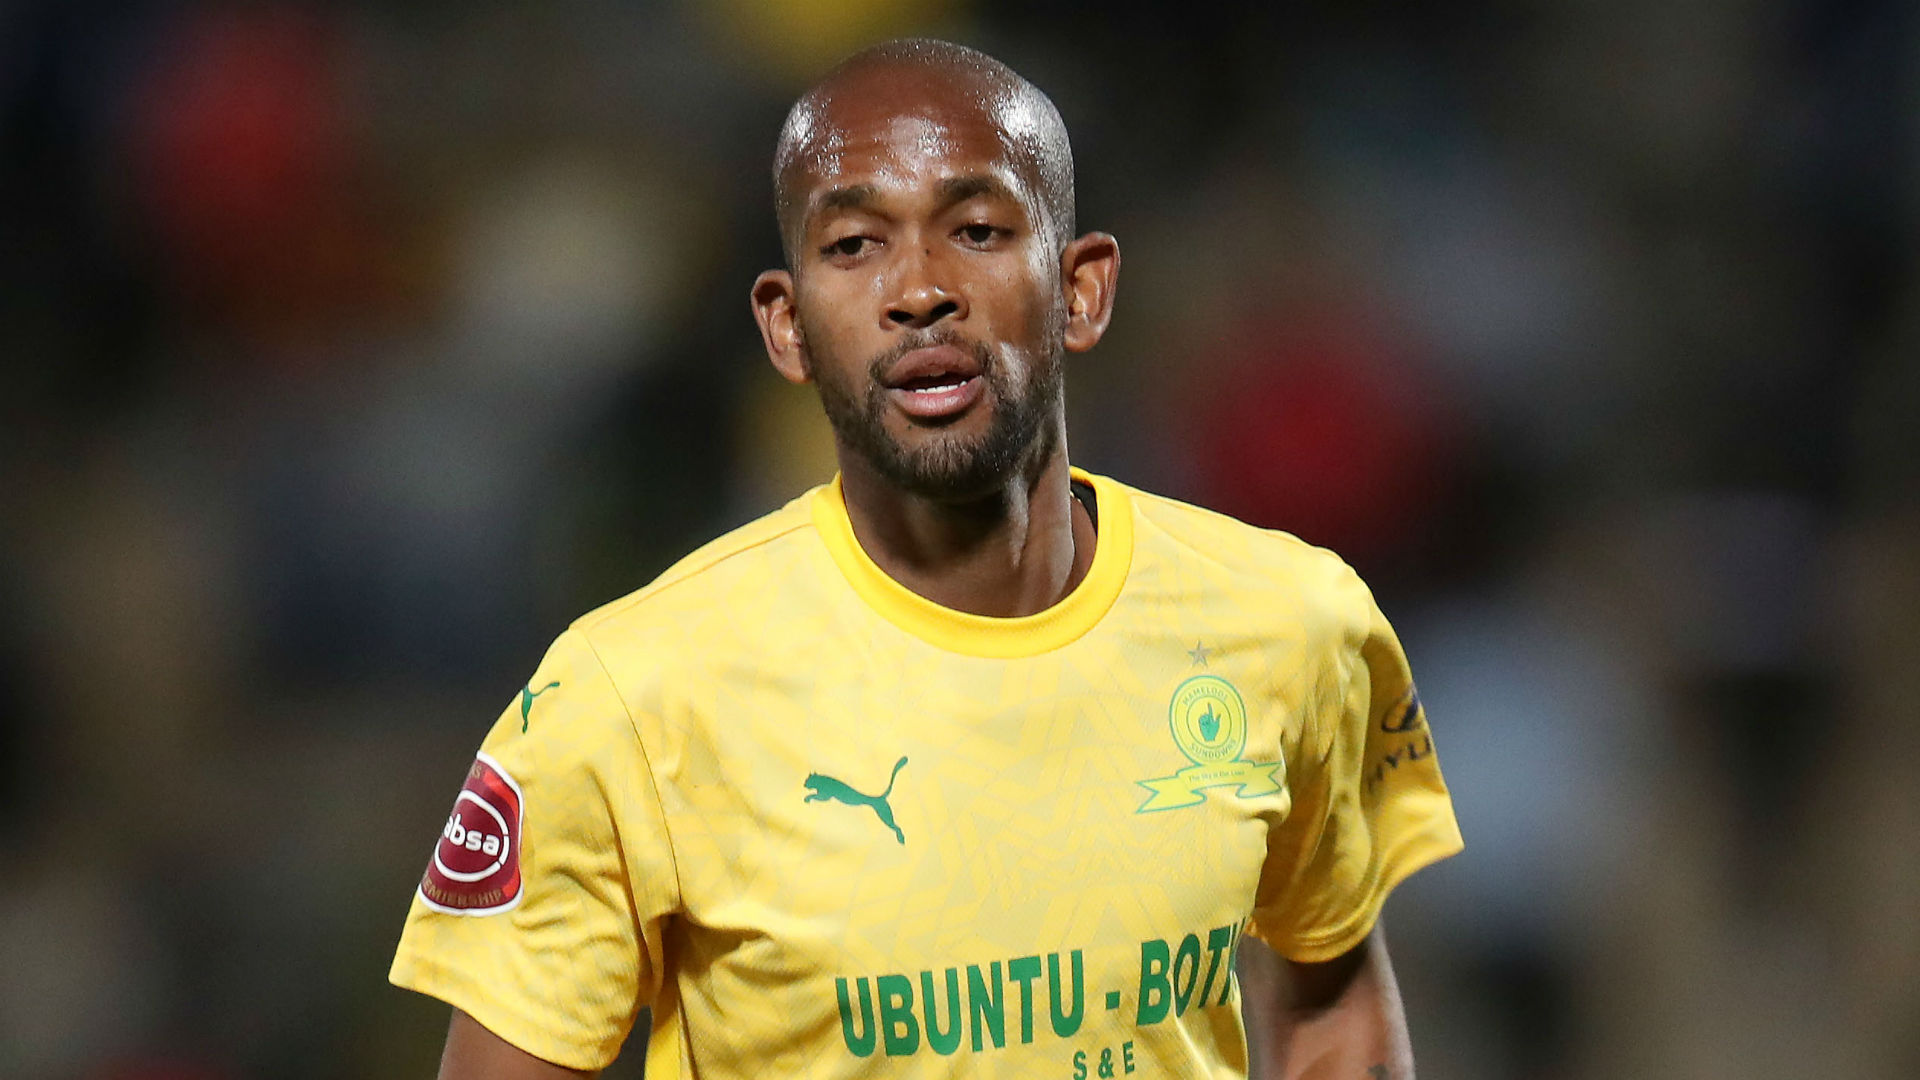 Mamelodi Sundowns defender Lebusa: It was frustrating at times